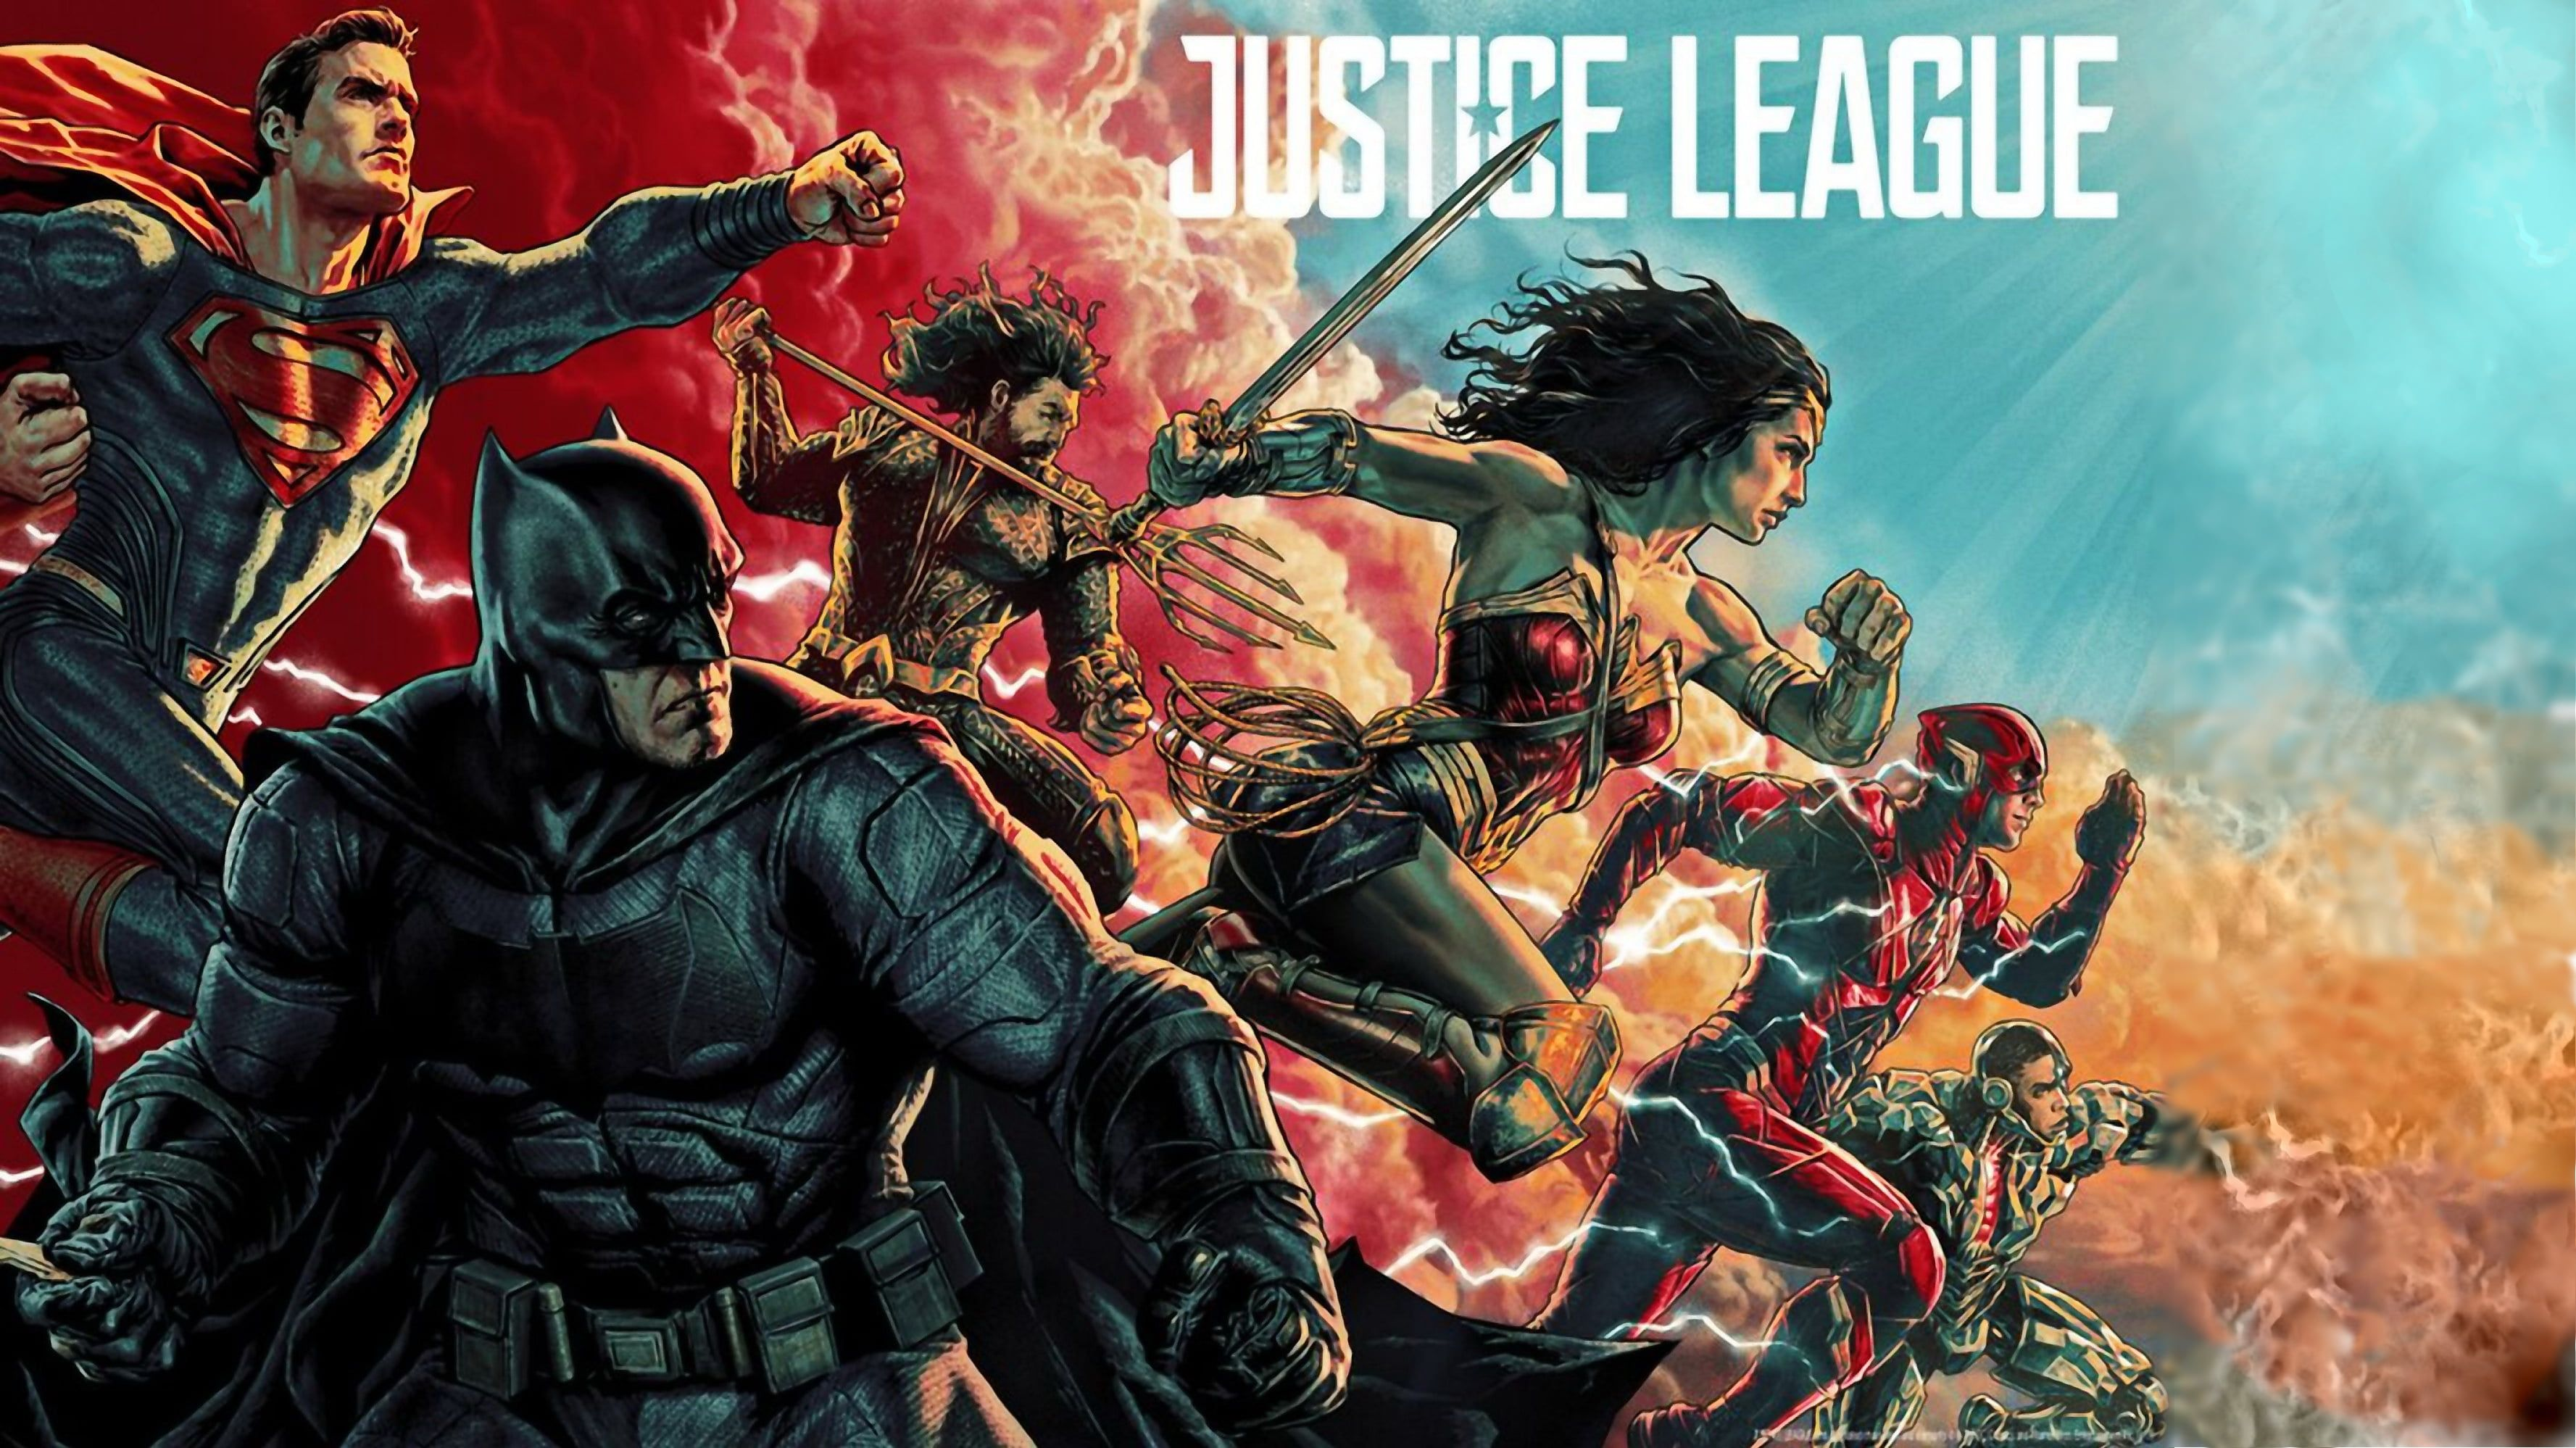 Justice League Movies 2017 Movies Wonder Woman Superman Batman Aquaman Flash Hd 4k Artw In 2020 Justice League Artwork Justice League Comics Justice League Art